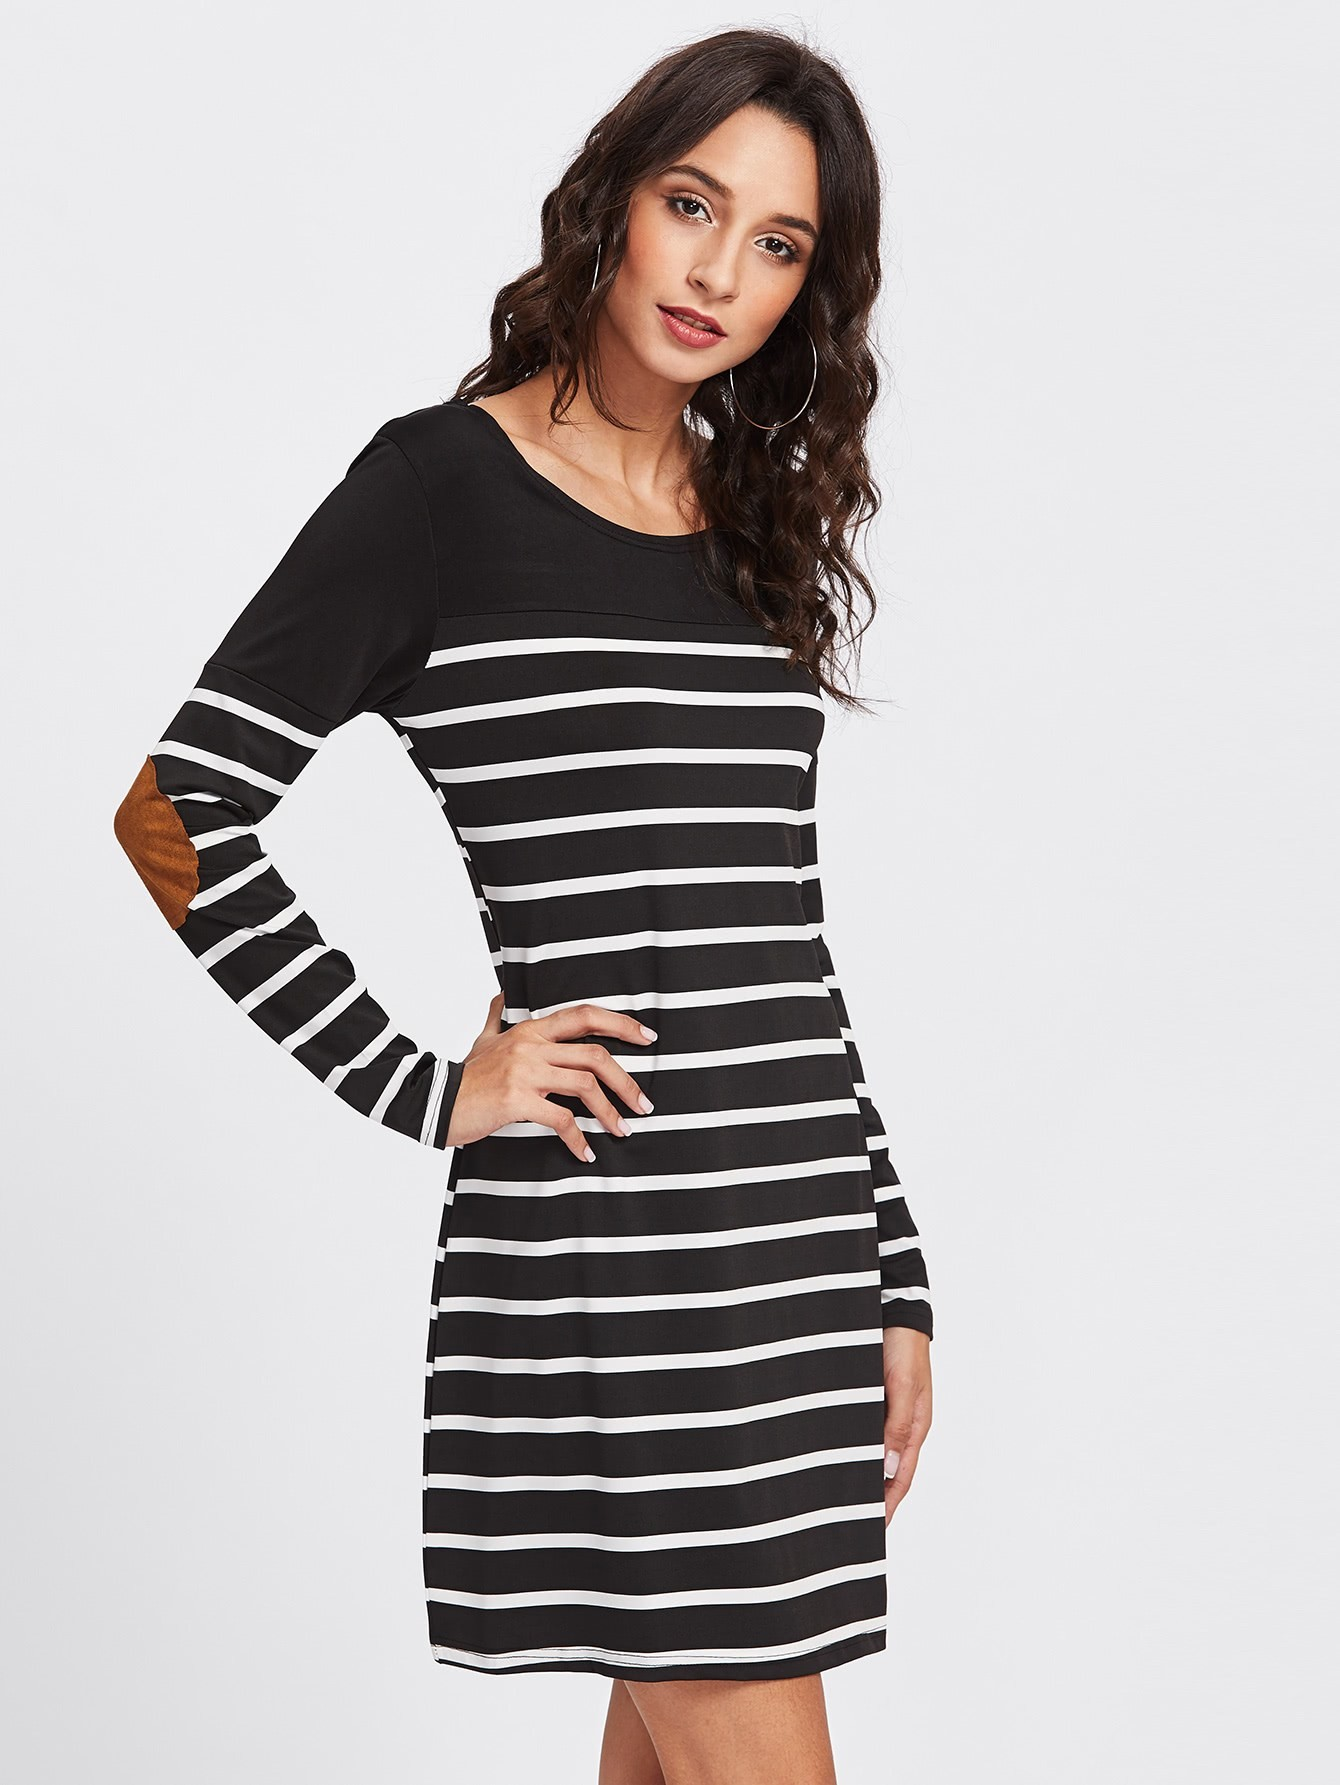 Elbow Patch Striped Tee Dress dress171023182